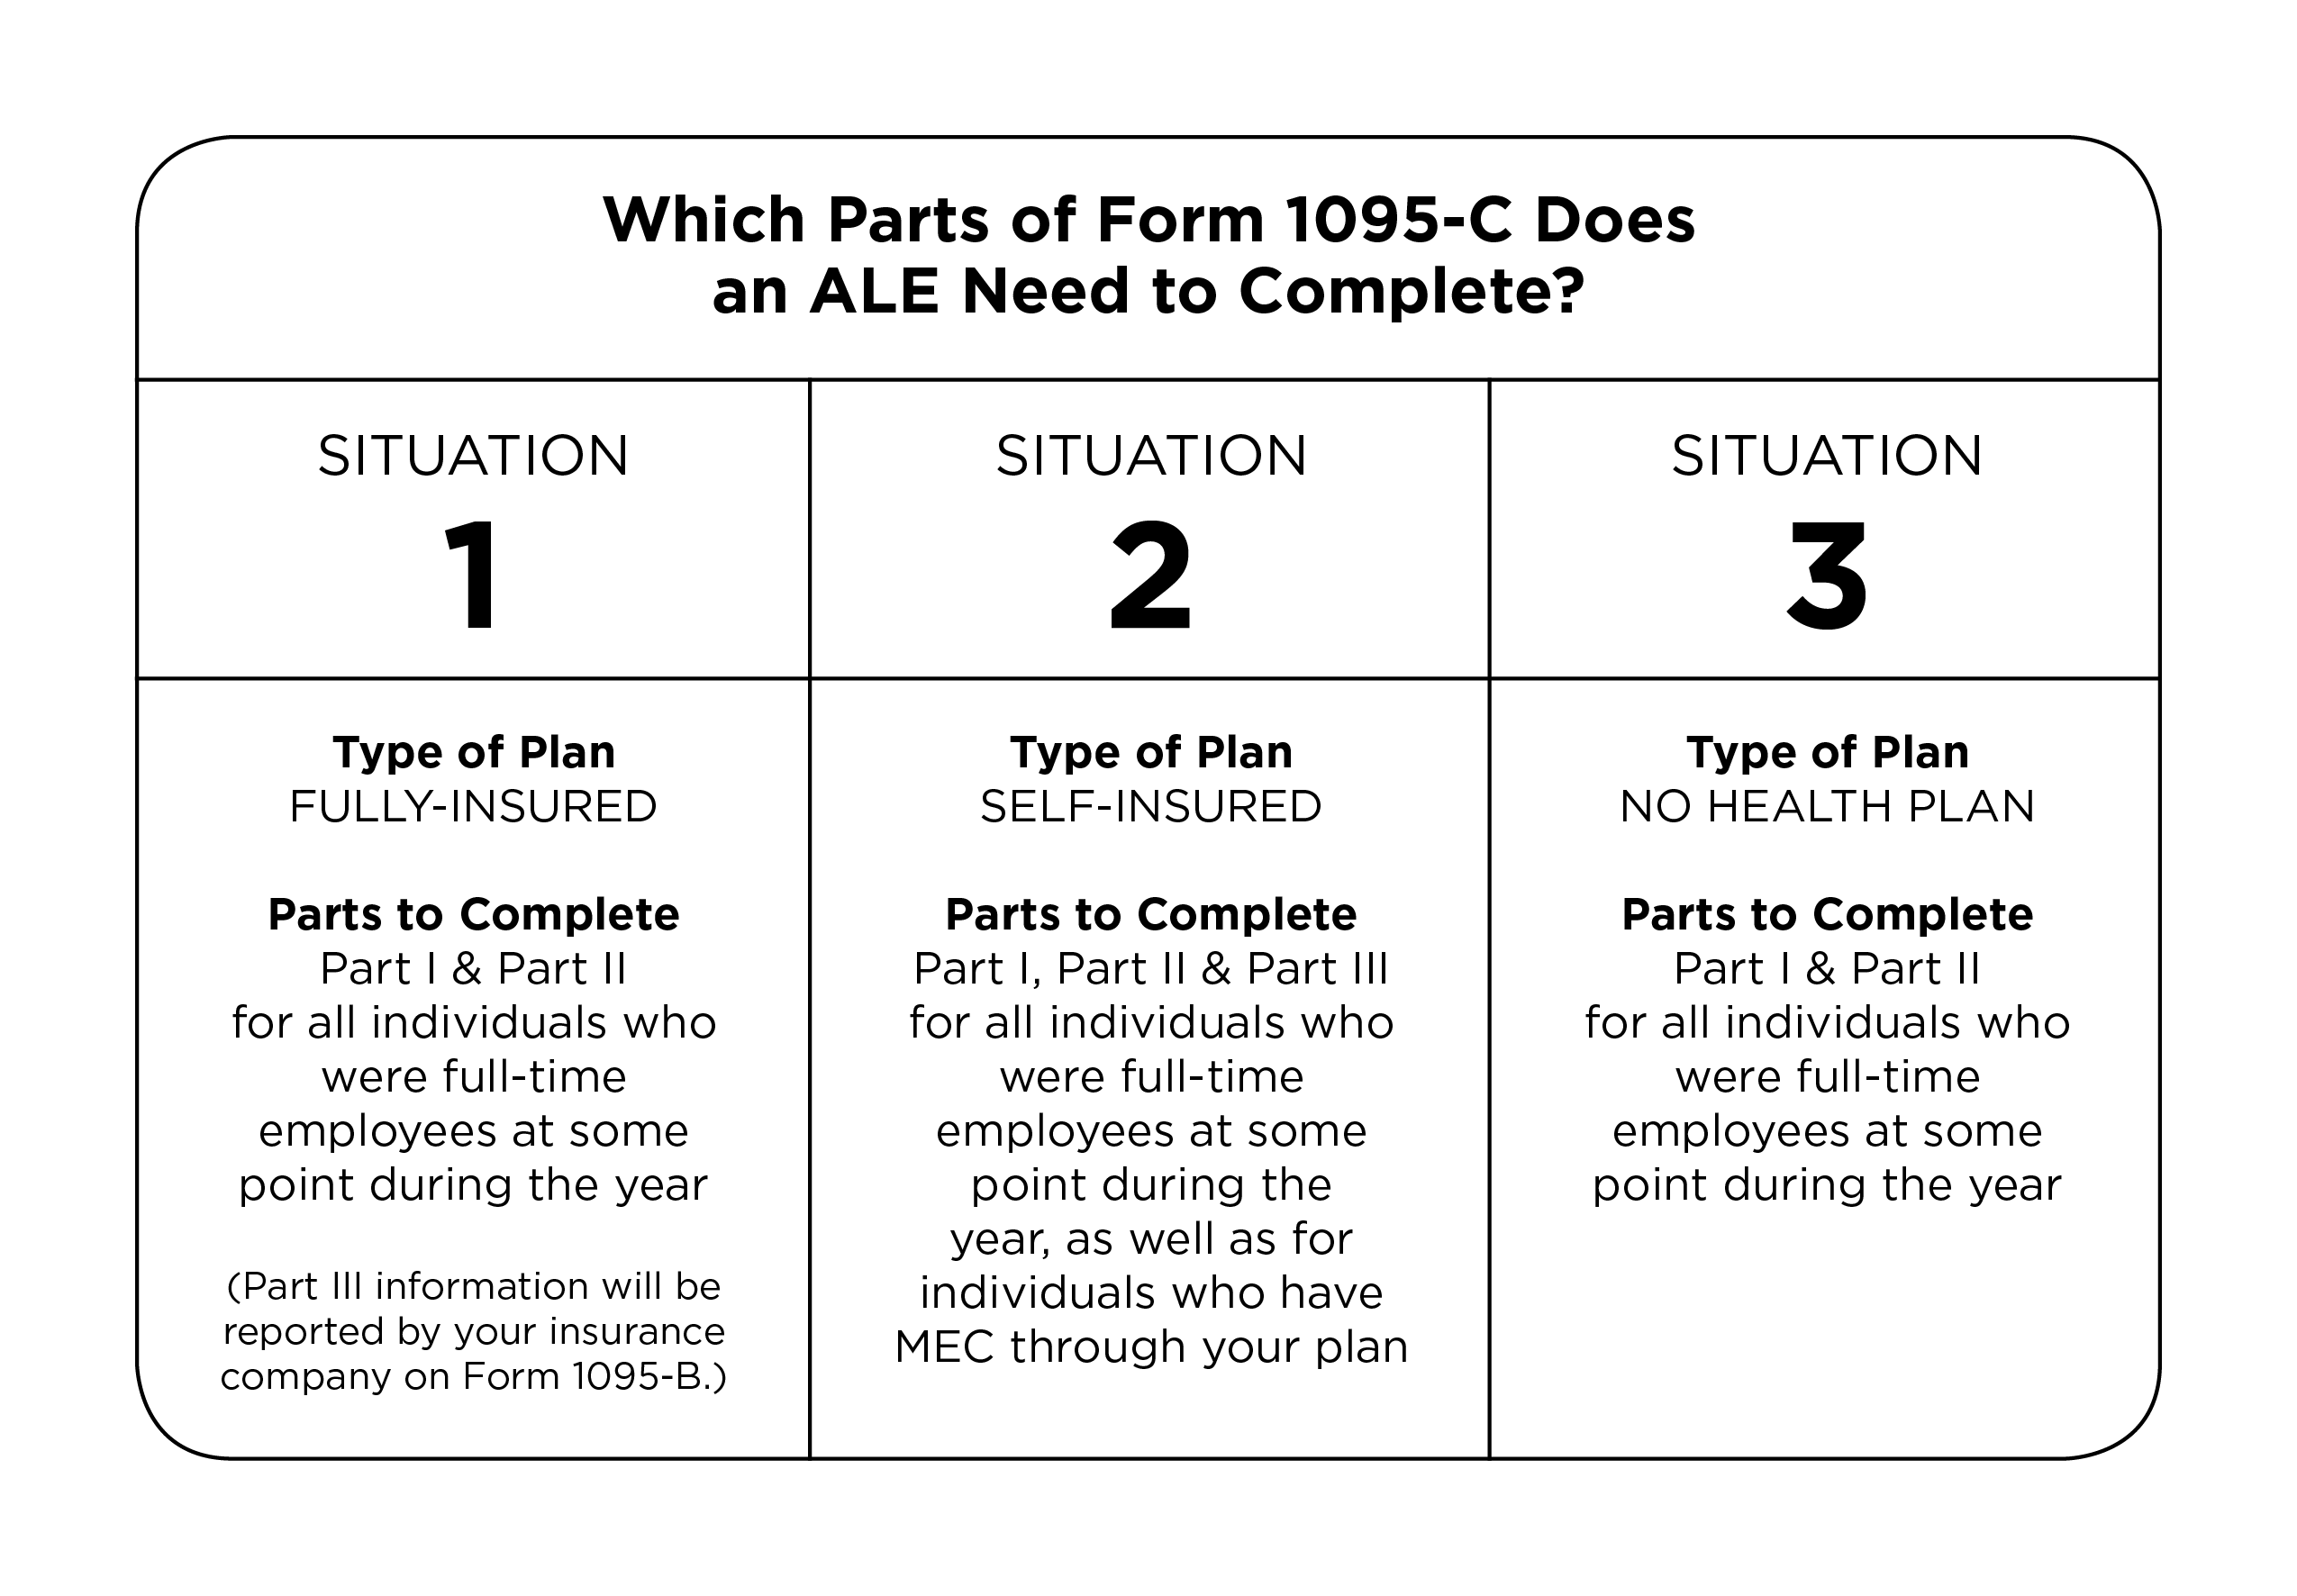 Which parts of Form 1095-C does an ALE need to complete